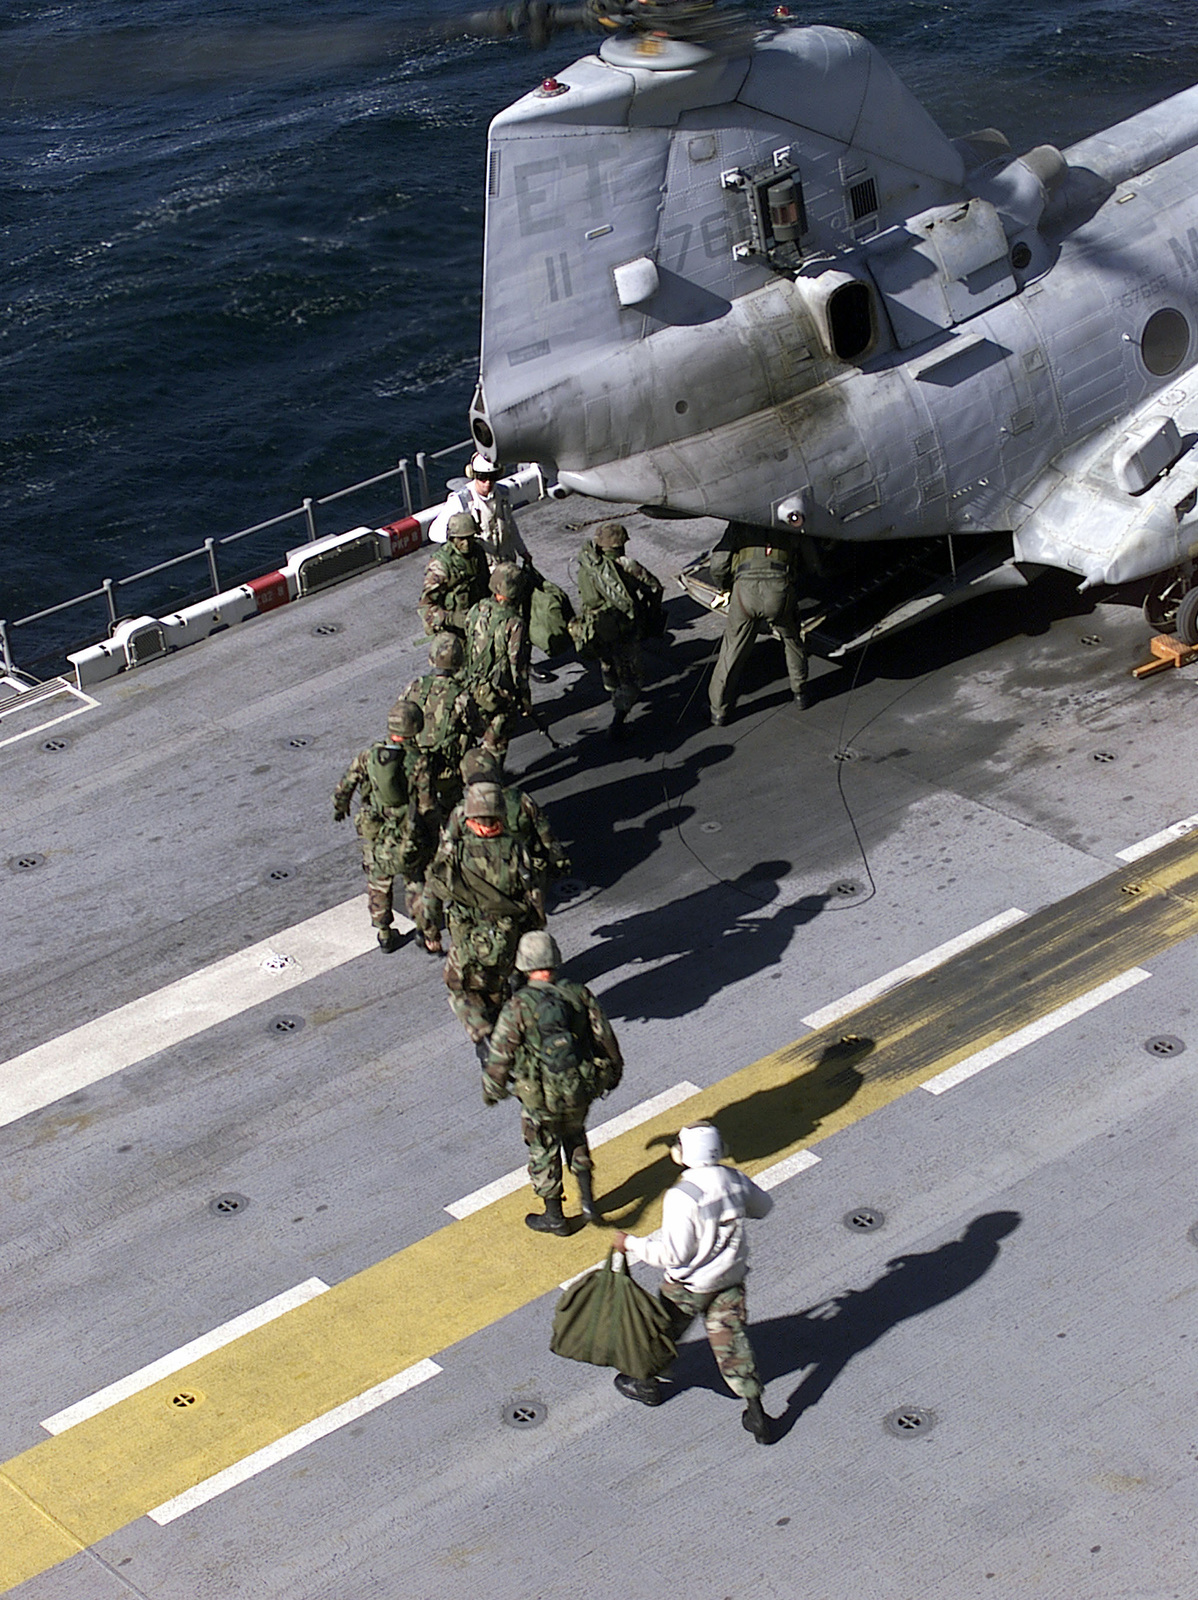 US Marines from Battalion Landing Team (BLT) load into the rear of a US Marine CH-46 (Sea Knight) helicopter to be flown ashore for their mission in the FOAL EAGLE 2000 exercise in Pohang, Korea. US Marines from the 31st Marine Expeditionary Unit spent two months participating in various training operations on and off the coast of Okinawa, Japan, Sasebo, Japan, Pohang, Korea, and Hong Kong, China